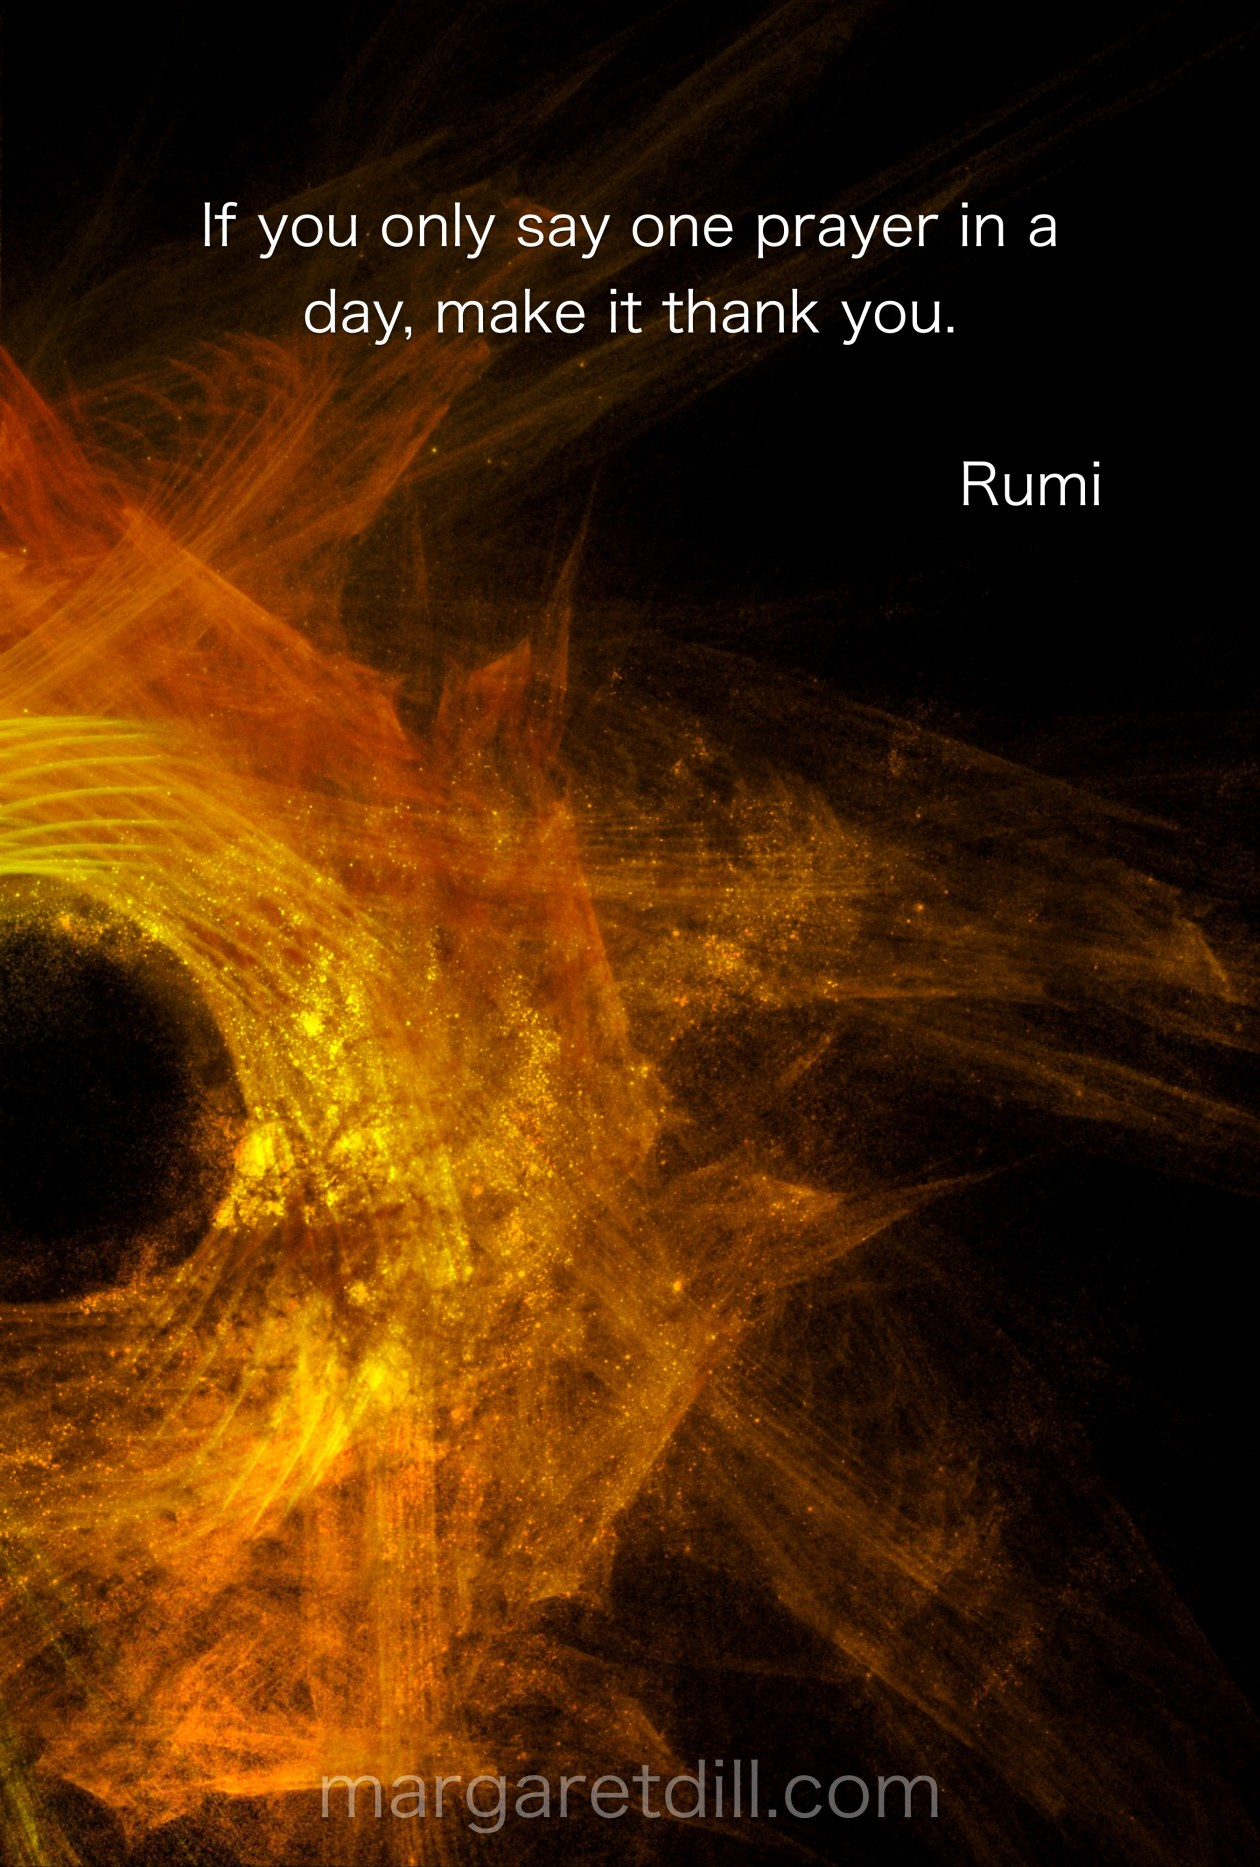 If you only say one prayer Rumi Quote  #wordstoliveby #mindfulness #meditation #Spiritualawakening #wordsofwisdom #quotations #rumi #rumiquotes